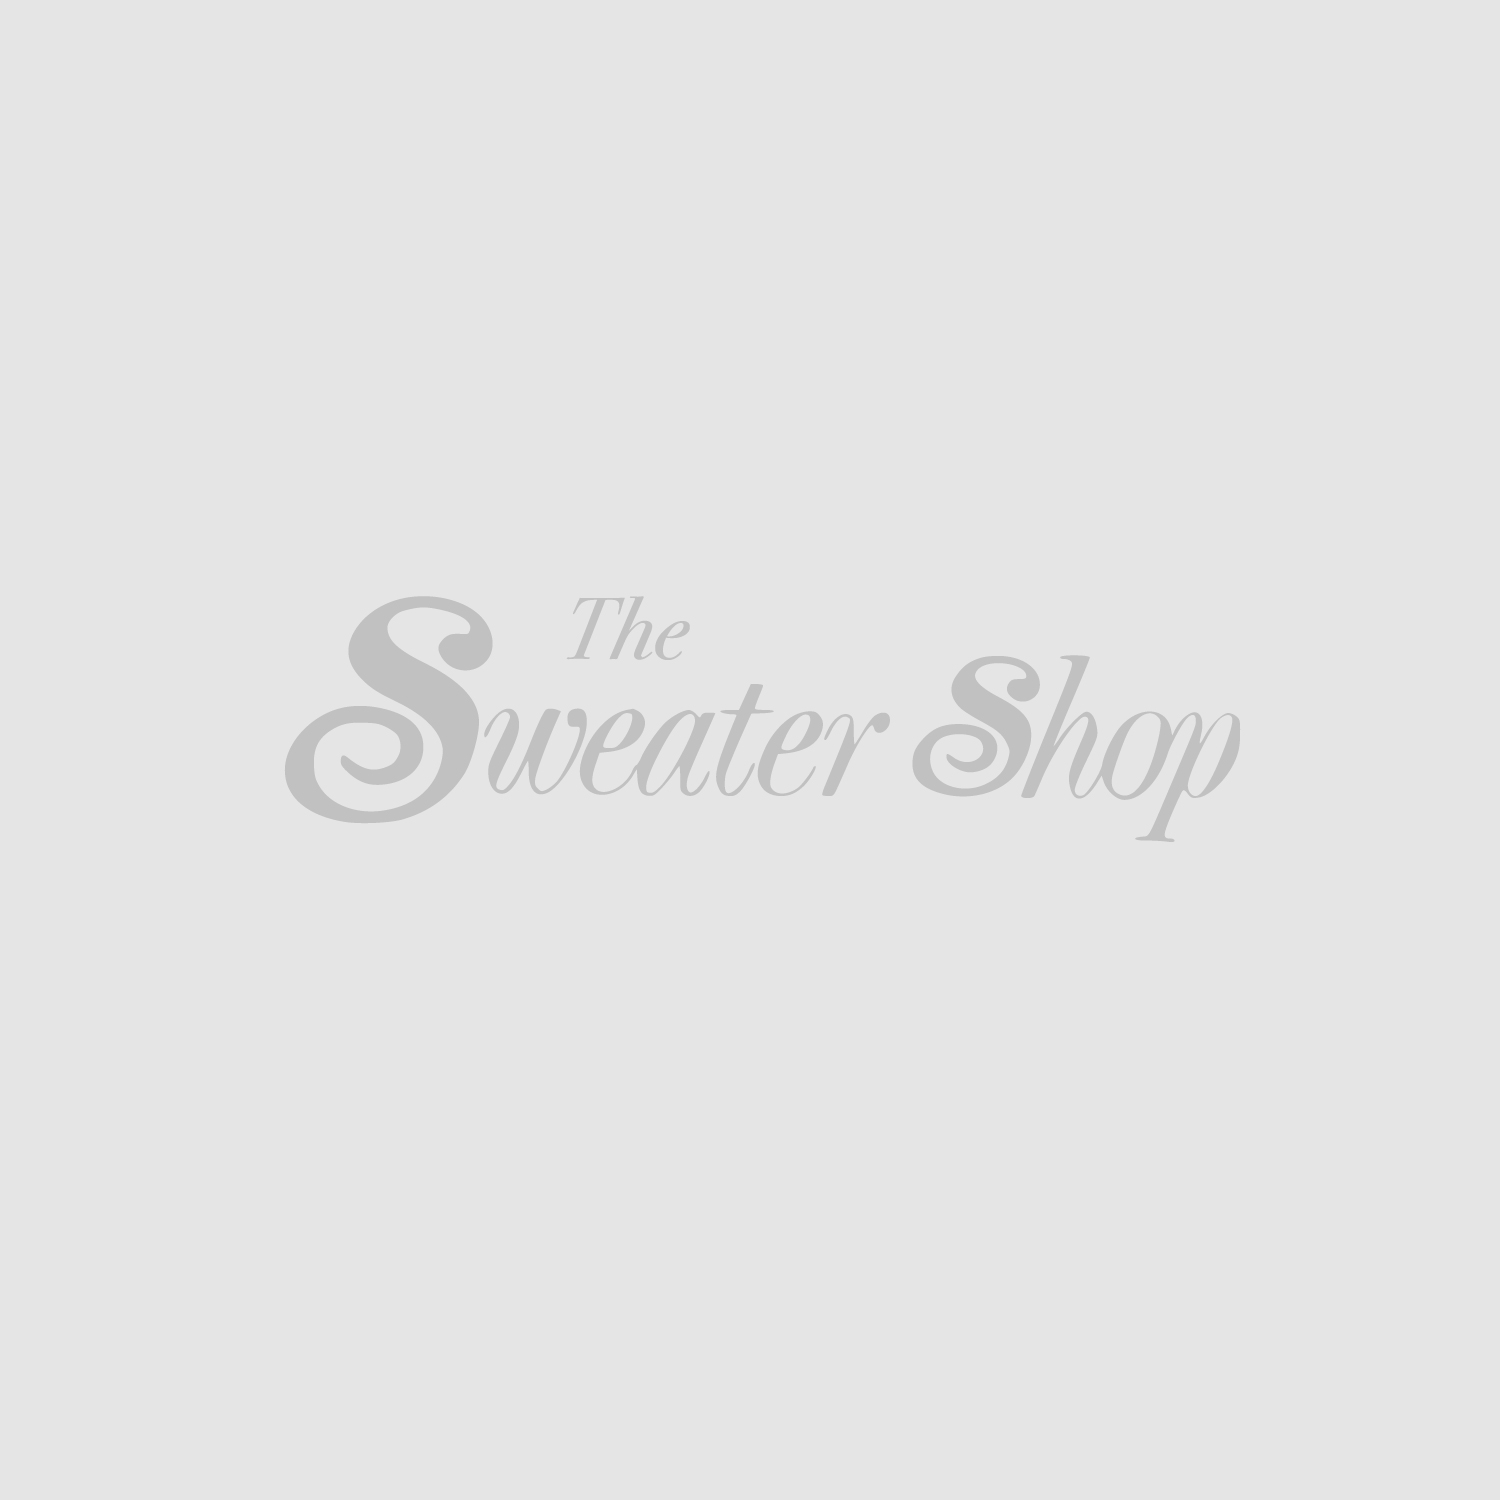 651f478757b179 Sweater Shop | The Sweater Shop, Ireland